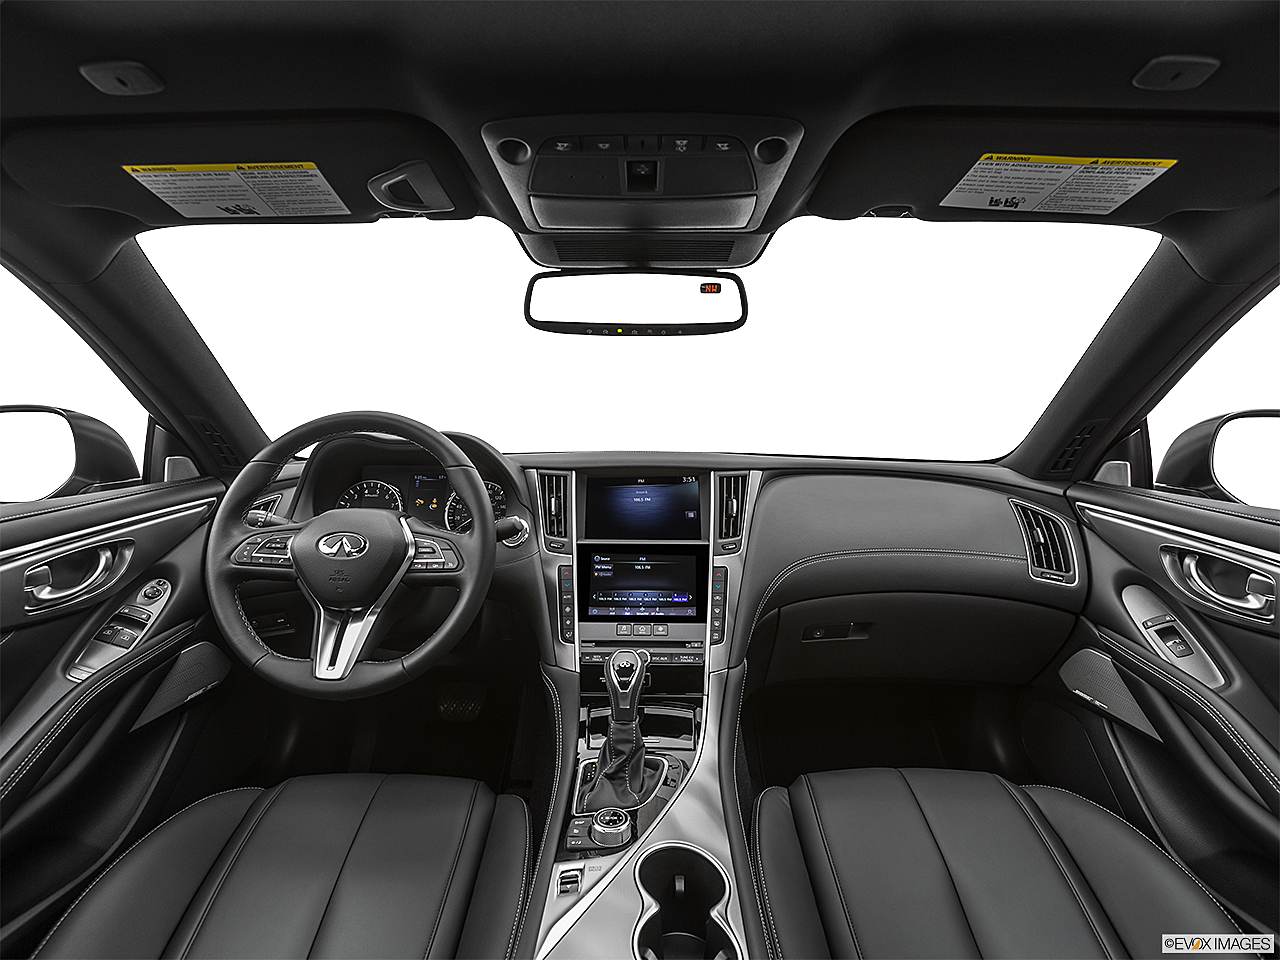 2020 Infiniti Q60 3.0t LUXE, centered wide dash shot